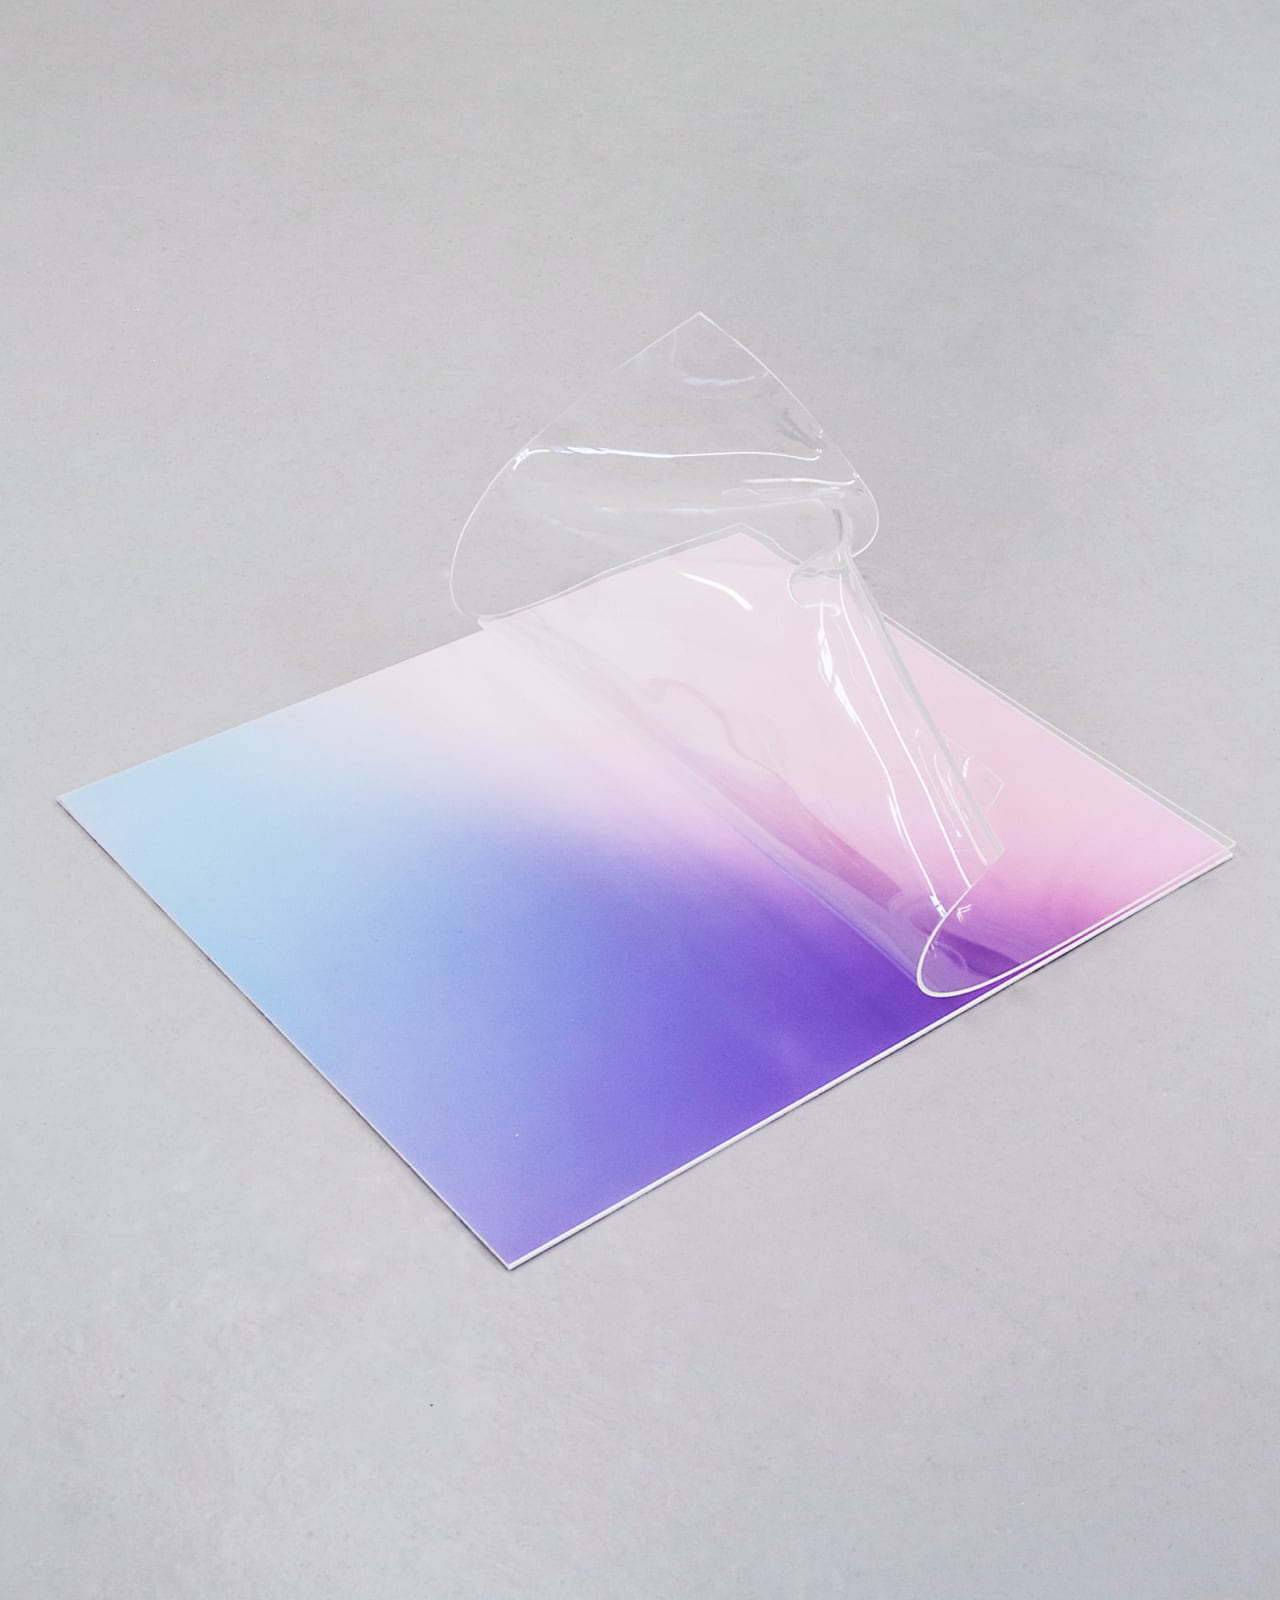 SZILVIA BOLLA Photo objects I. / Rose Quartz & Serenity